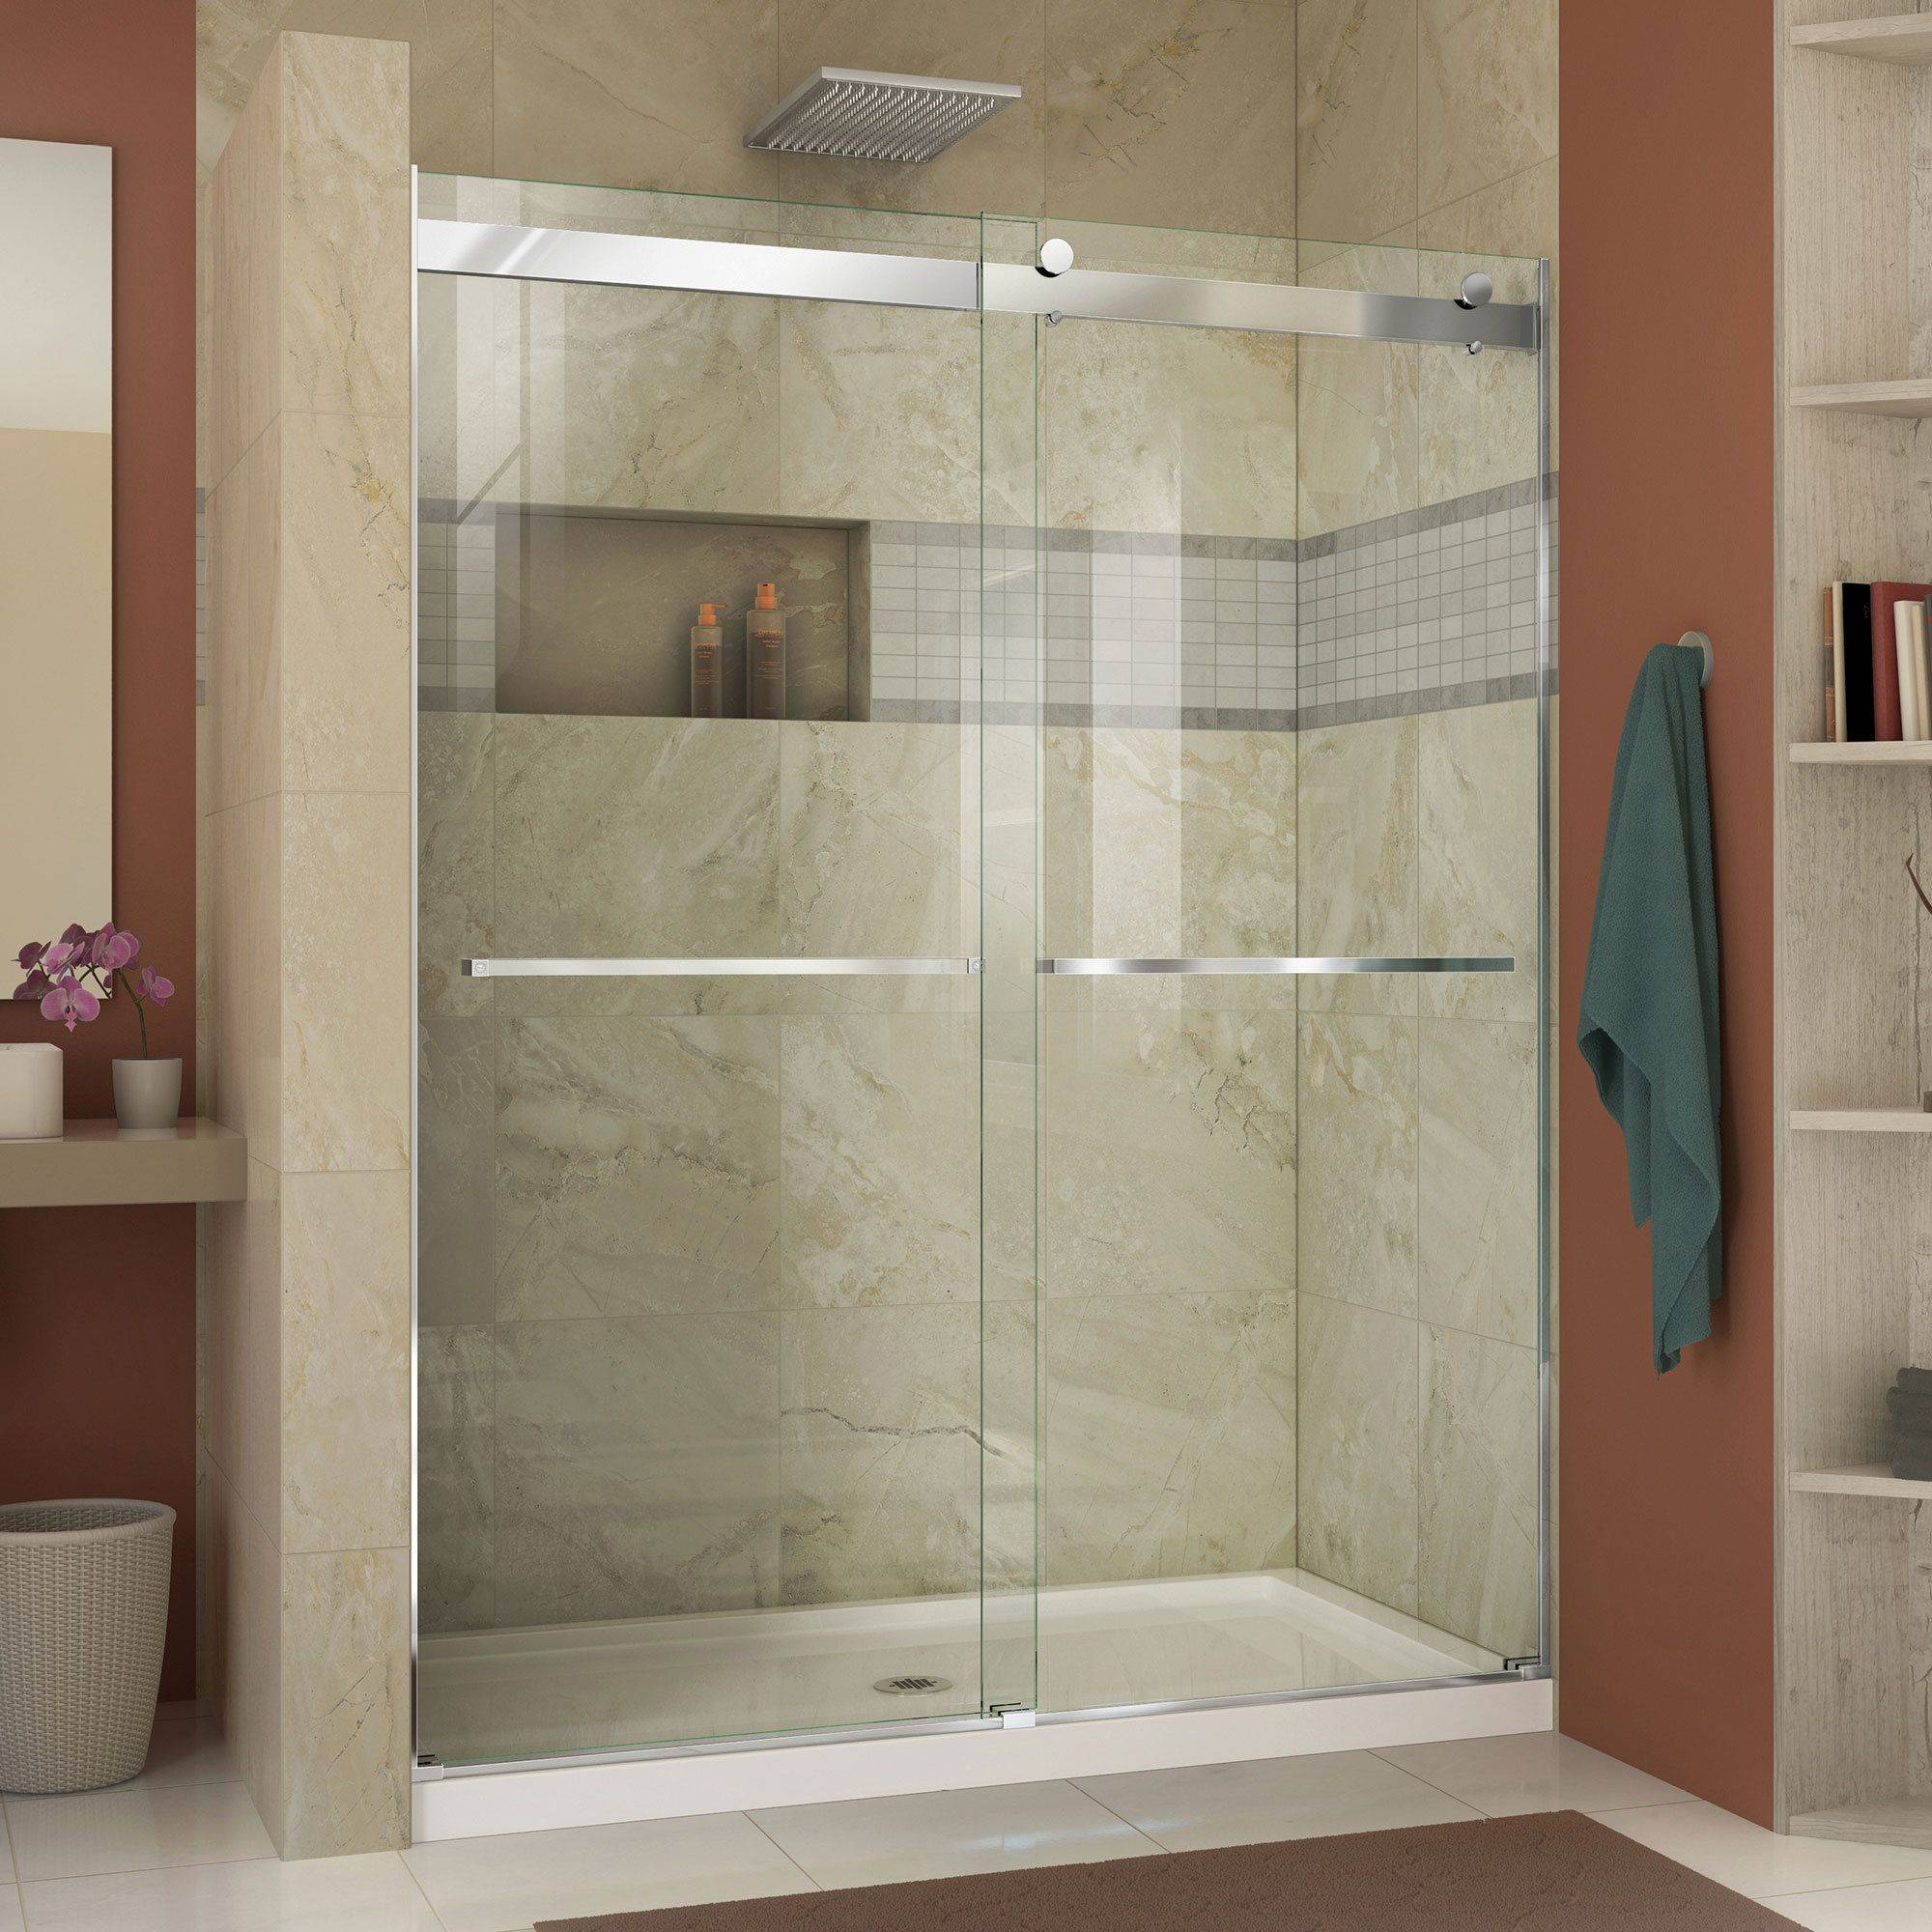 Exceptional Walk In Shower Sizes Inspirational 57 Best Barn Style Shower Doors by Dreamline Images